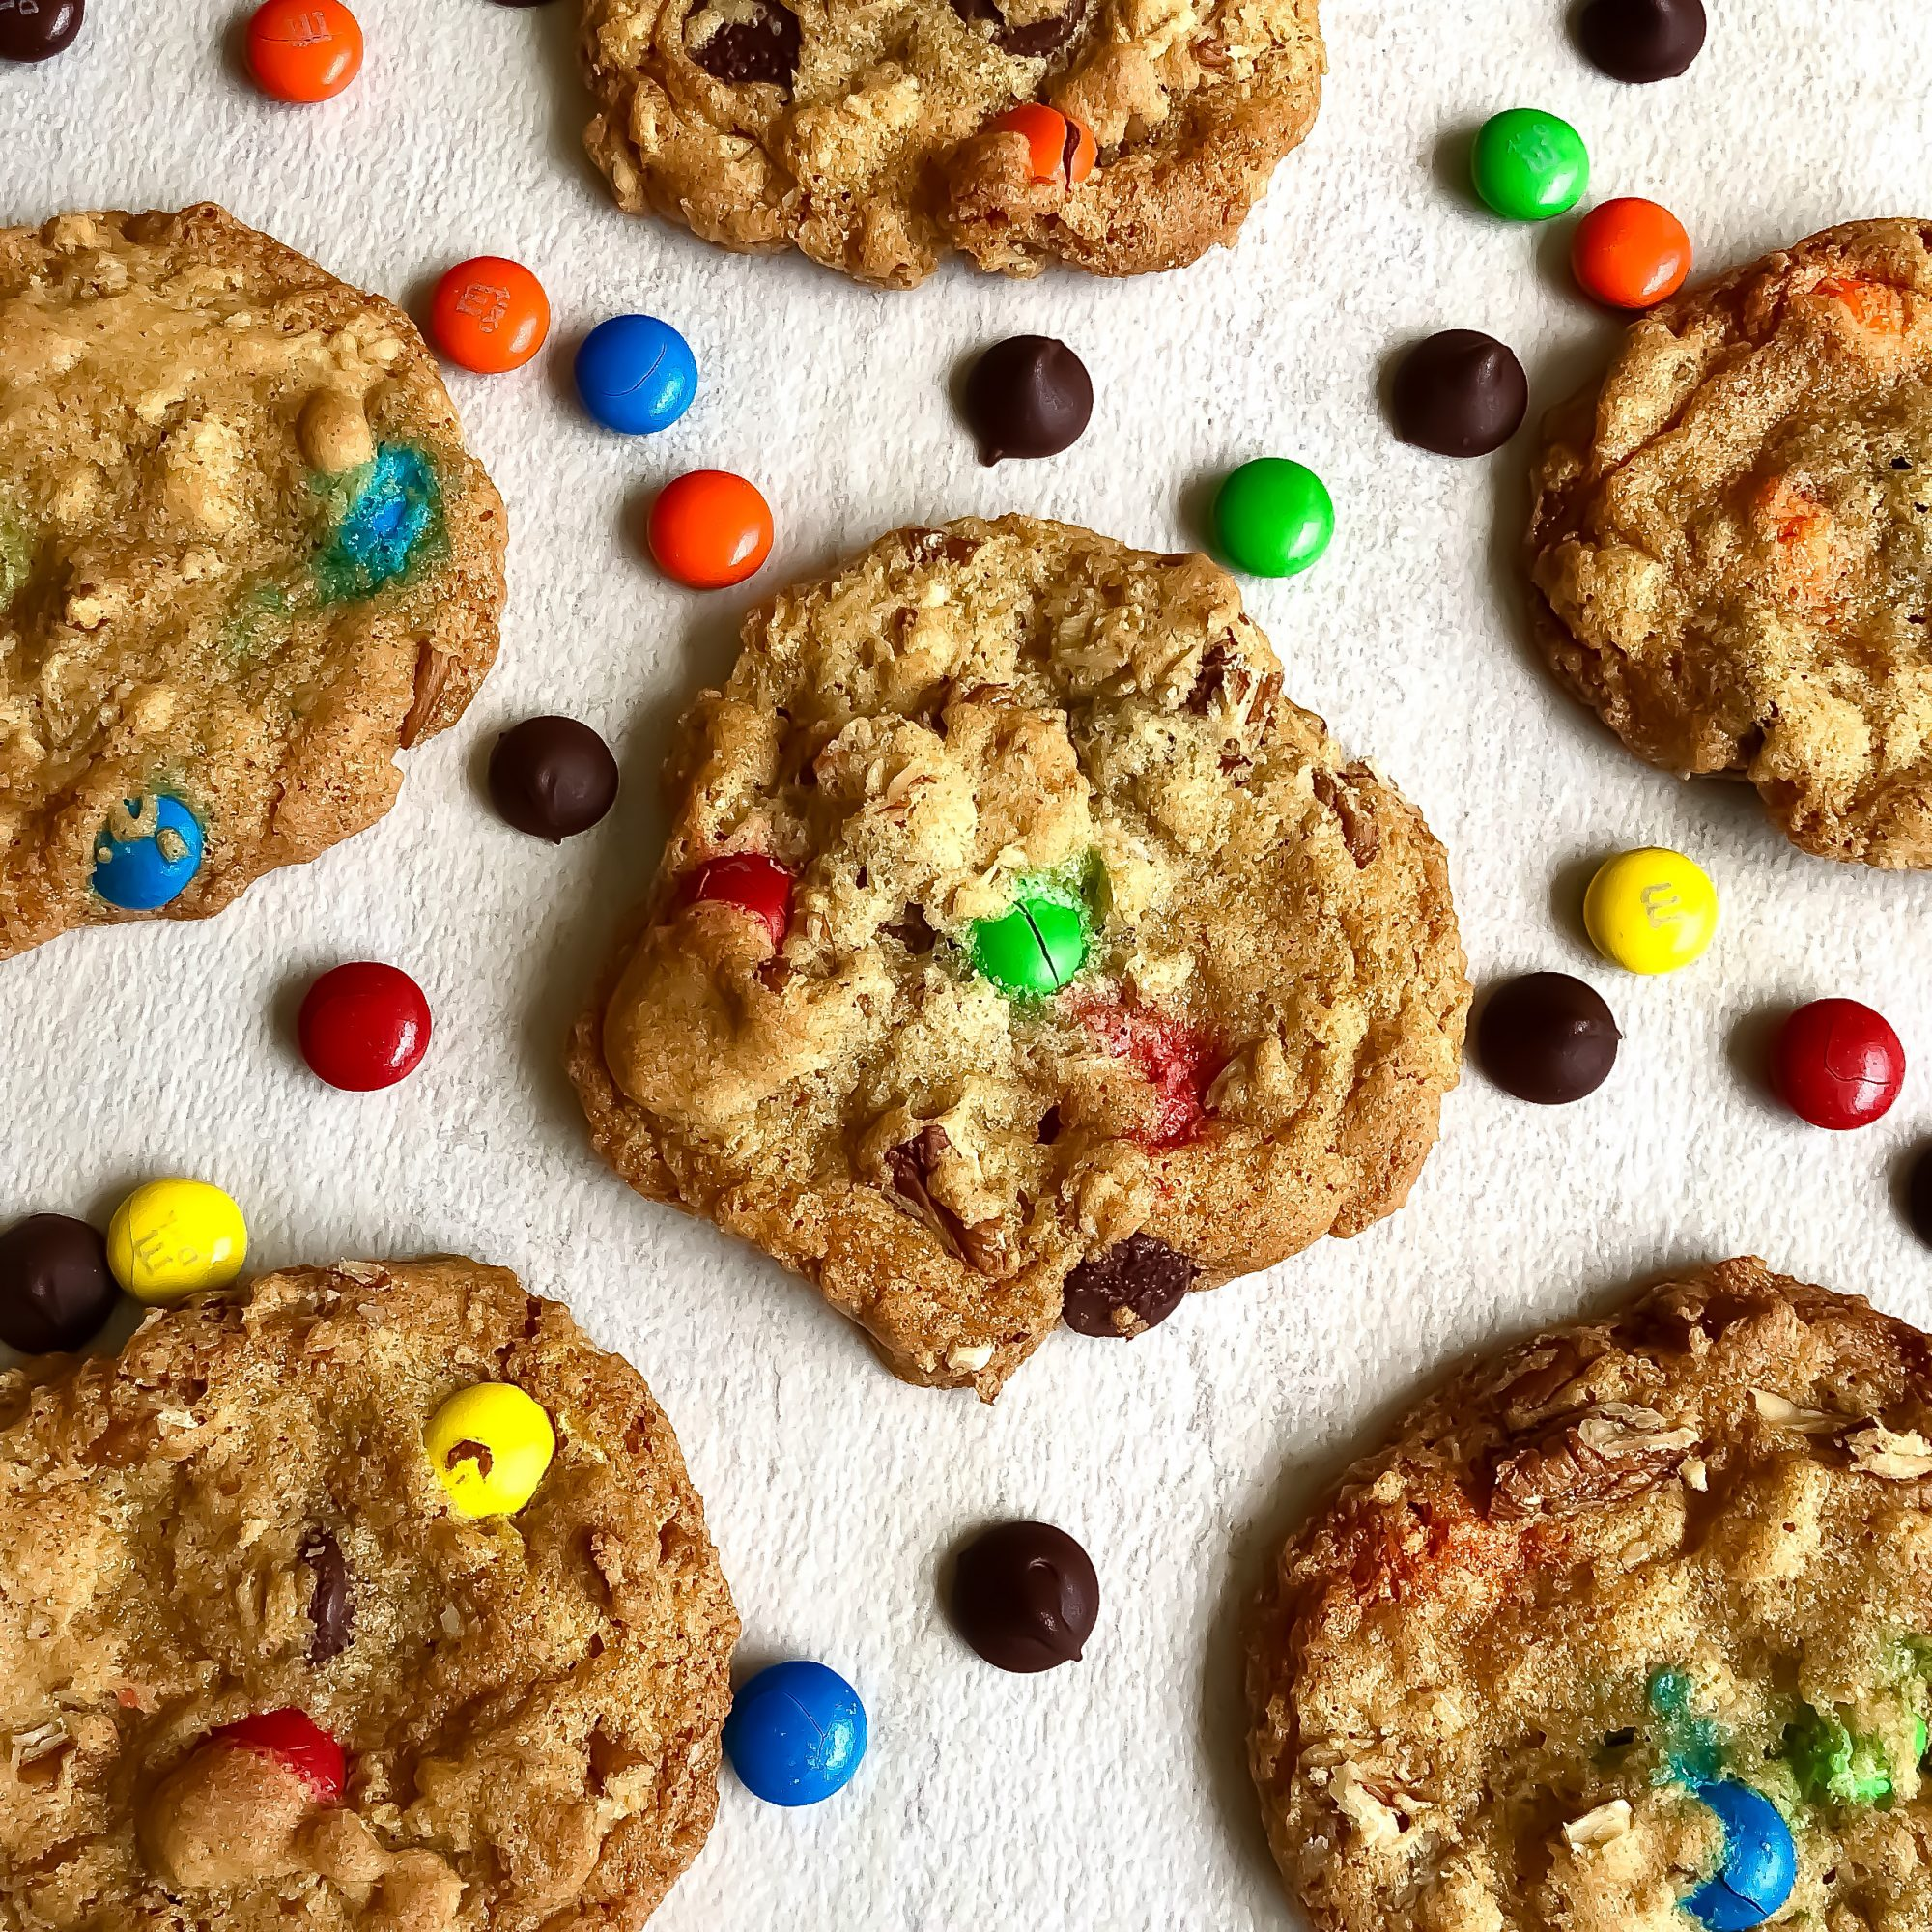 Cookies with colorful chocolate candies